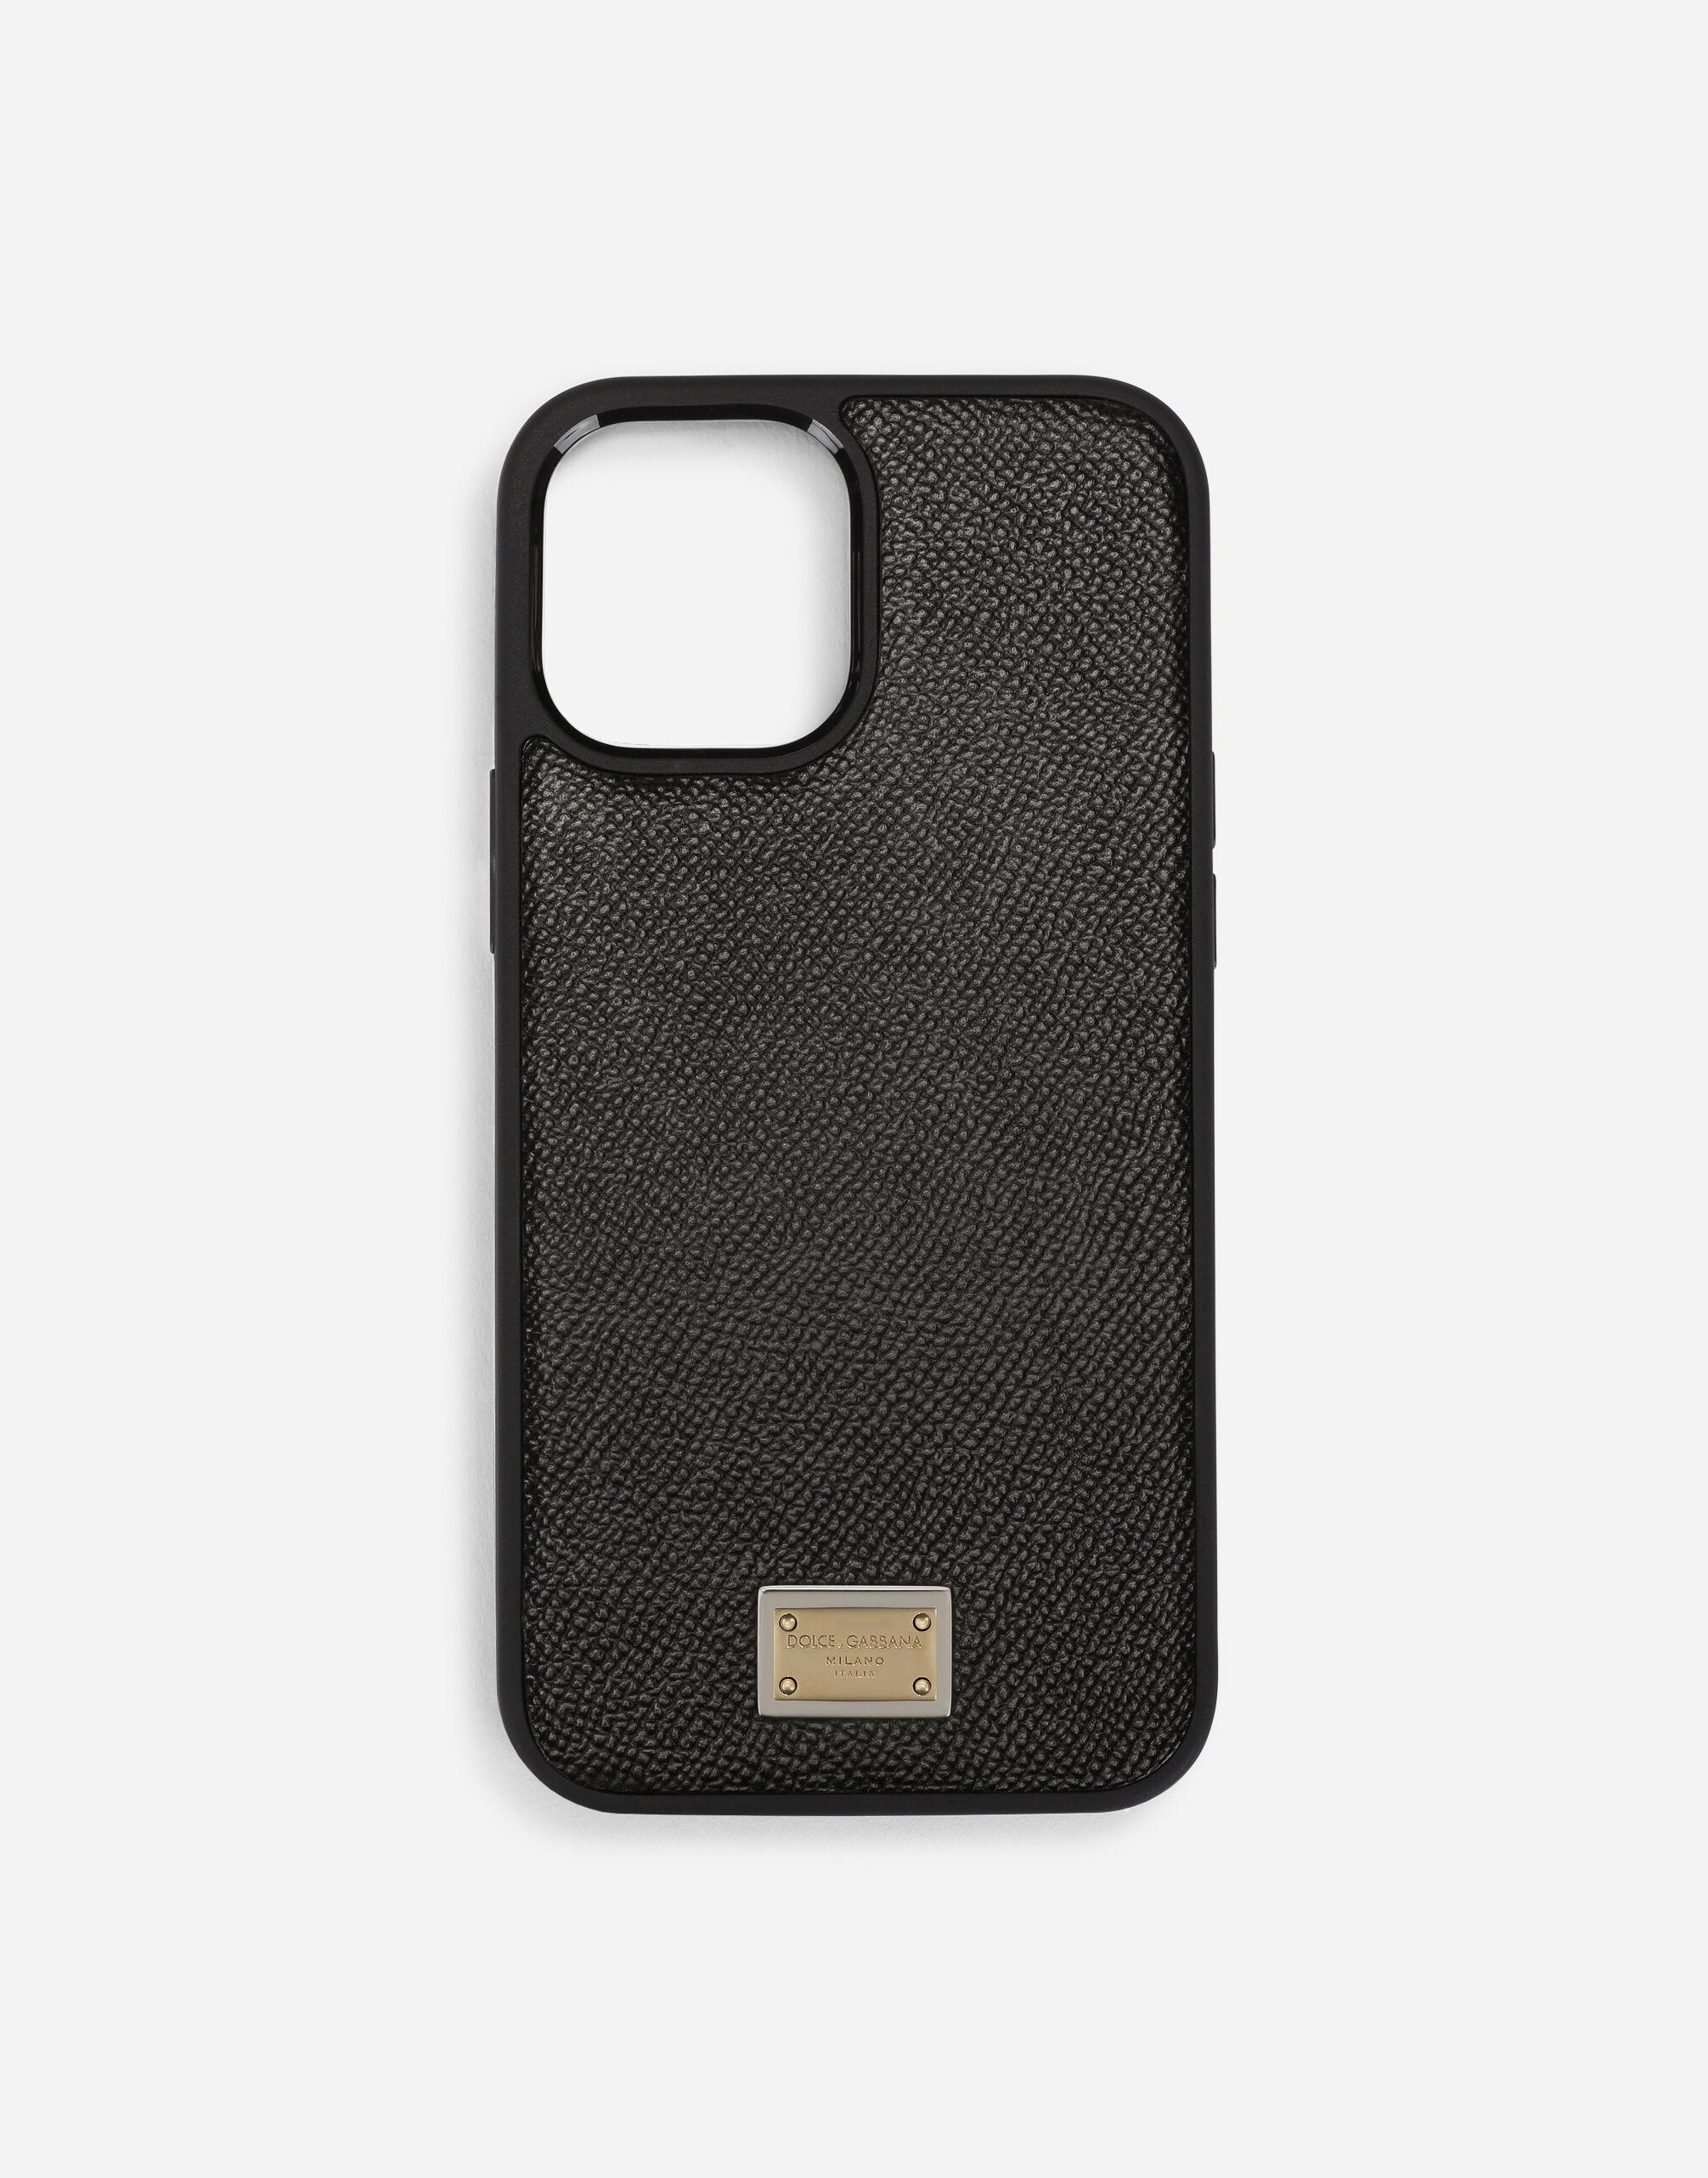 Dauphine calfskin iPhone 12 Pro Max cover with plate